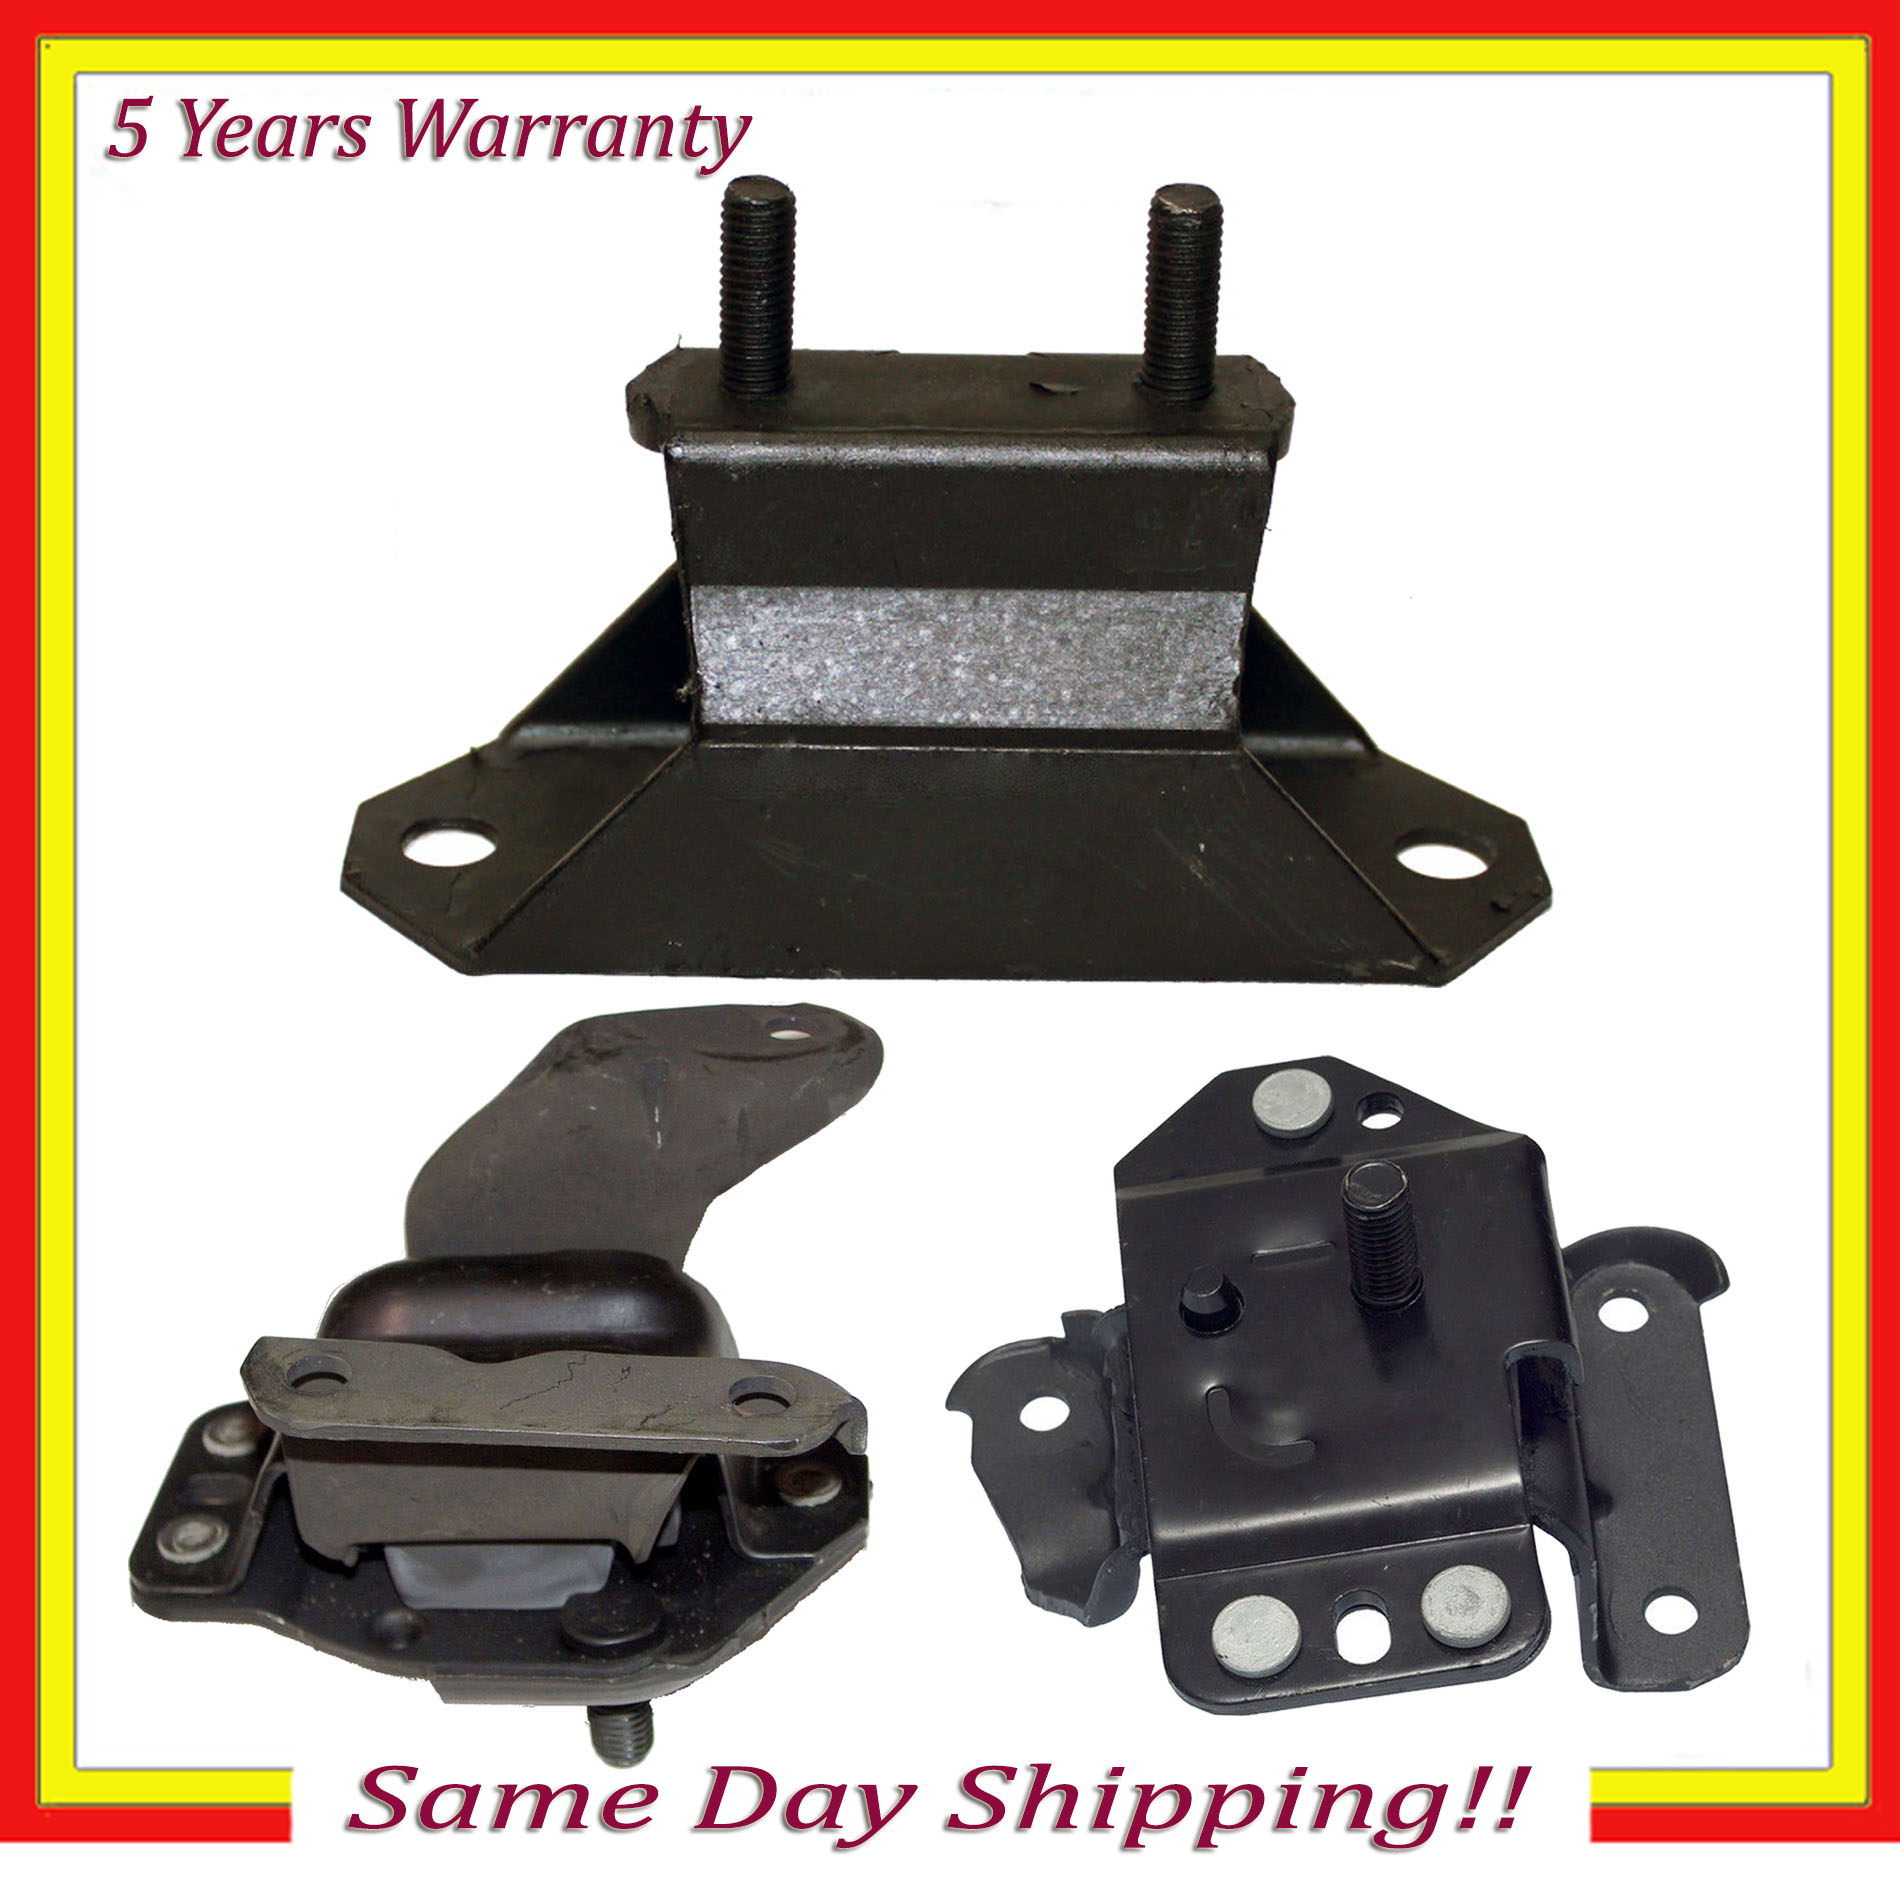 Engine Motor /& Trans Mount 2784 2997 2998 3PCS For Ford Mustang 3.8L RWD 1995